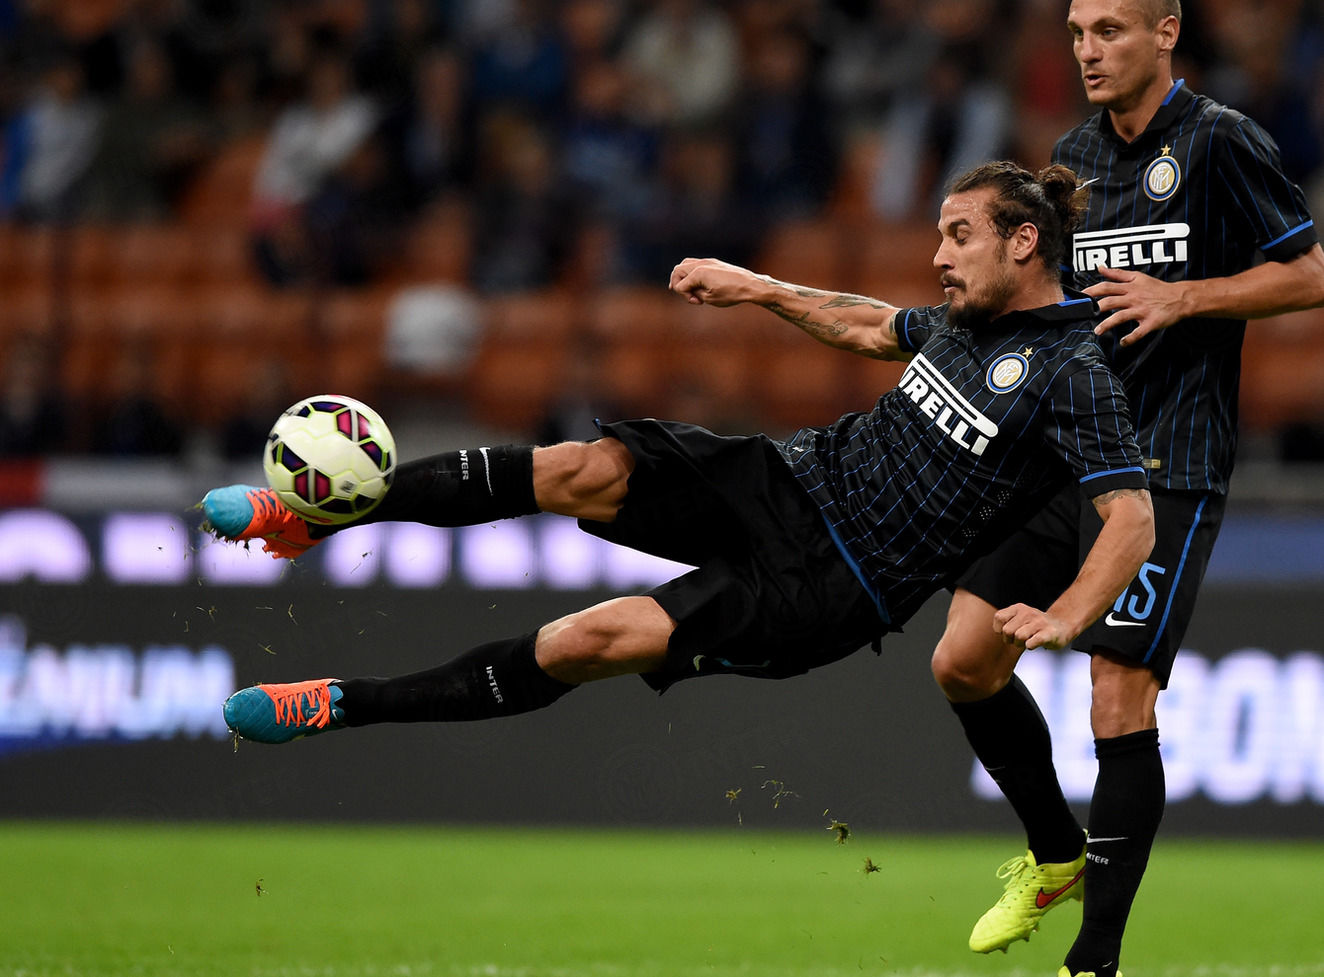 Inter 2-0 Atalanta photos